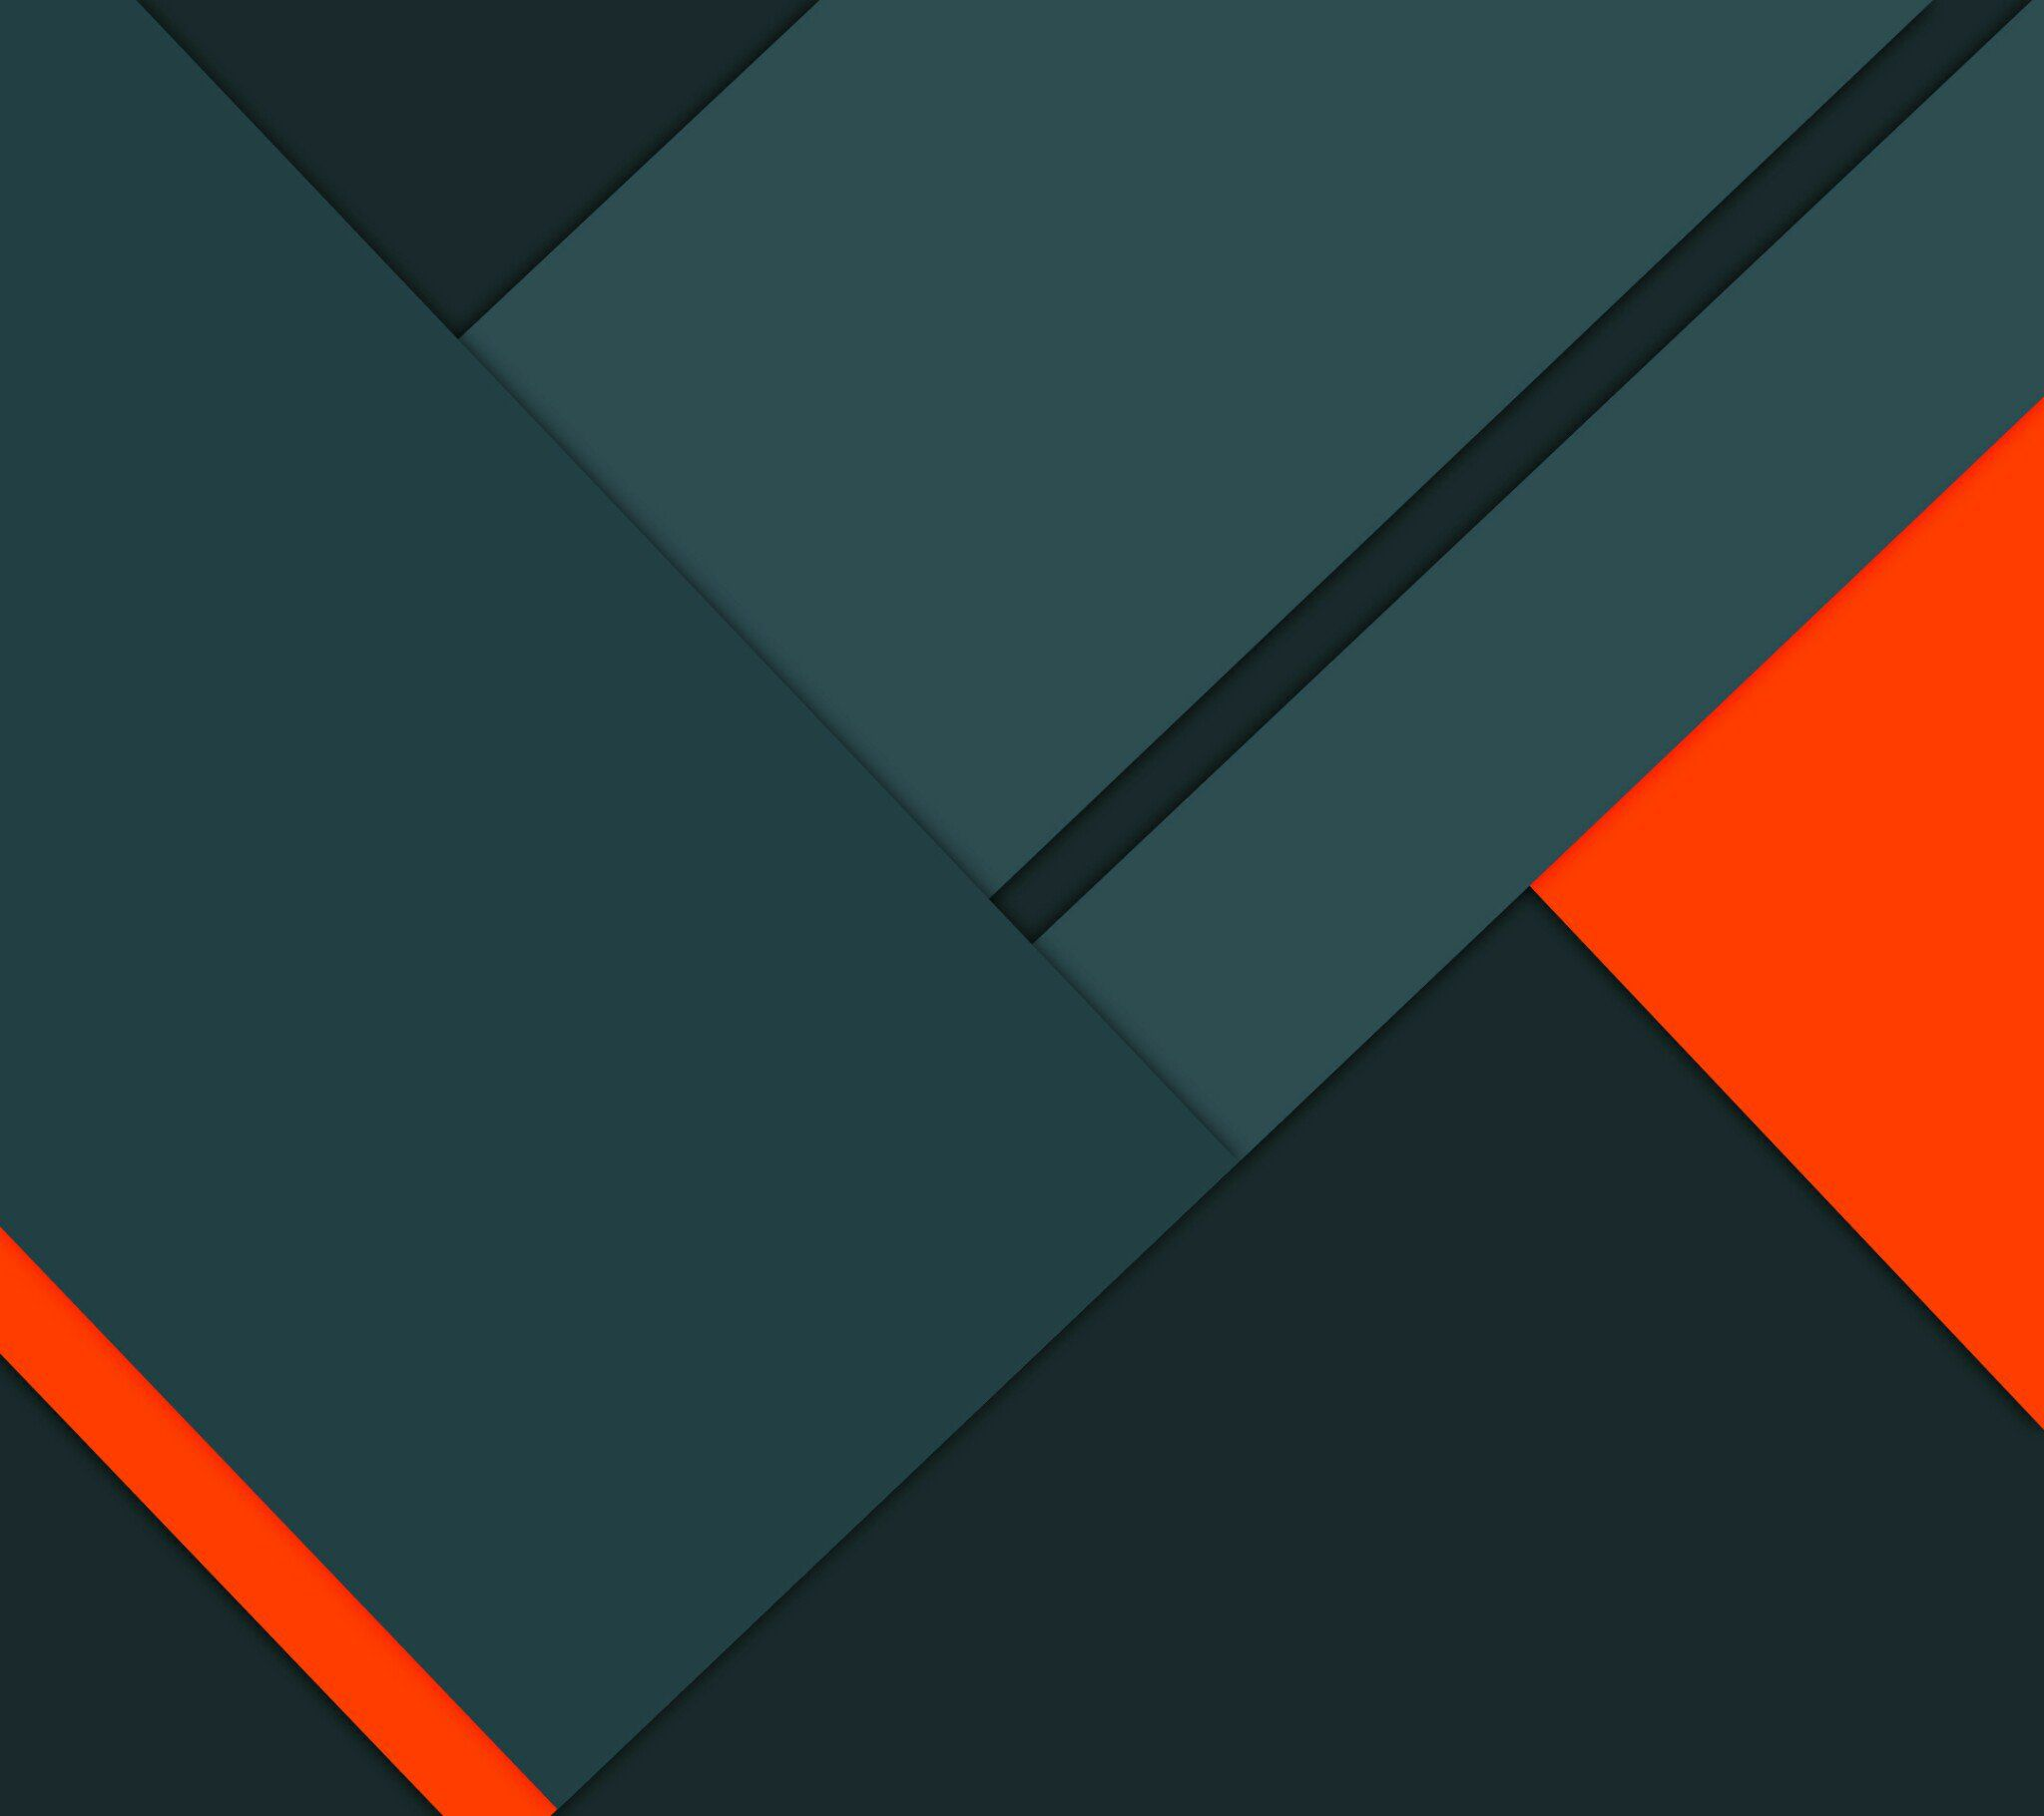 ultimate material design inspired wallpaper collection androidguys